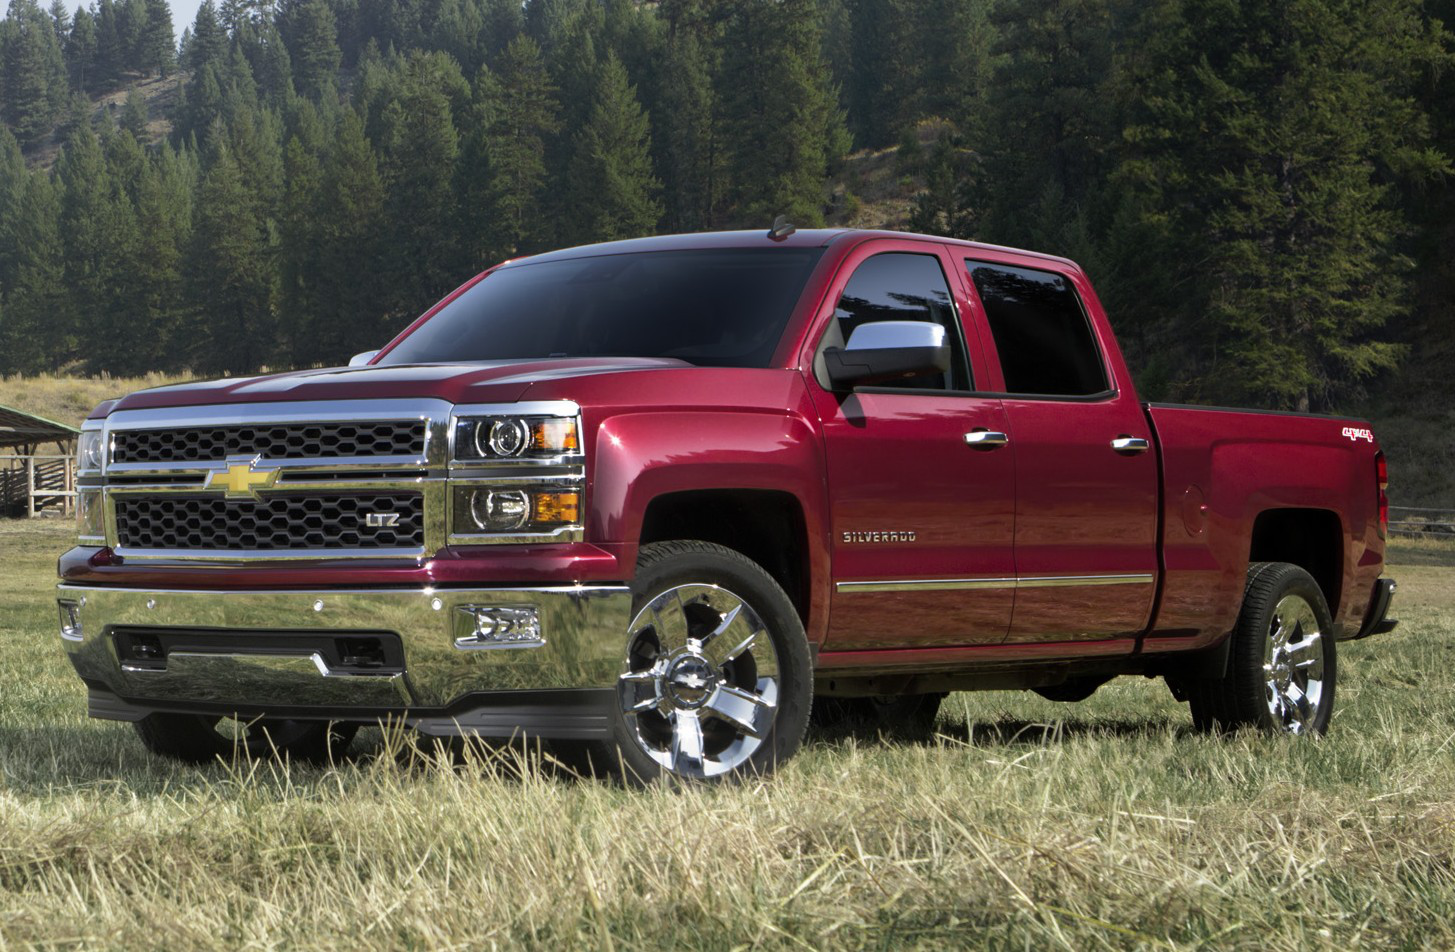 GM makes 8-speed automatic transmission standard on 2015